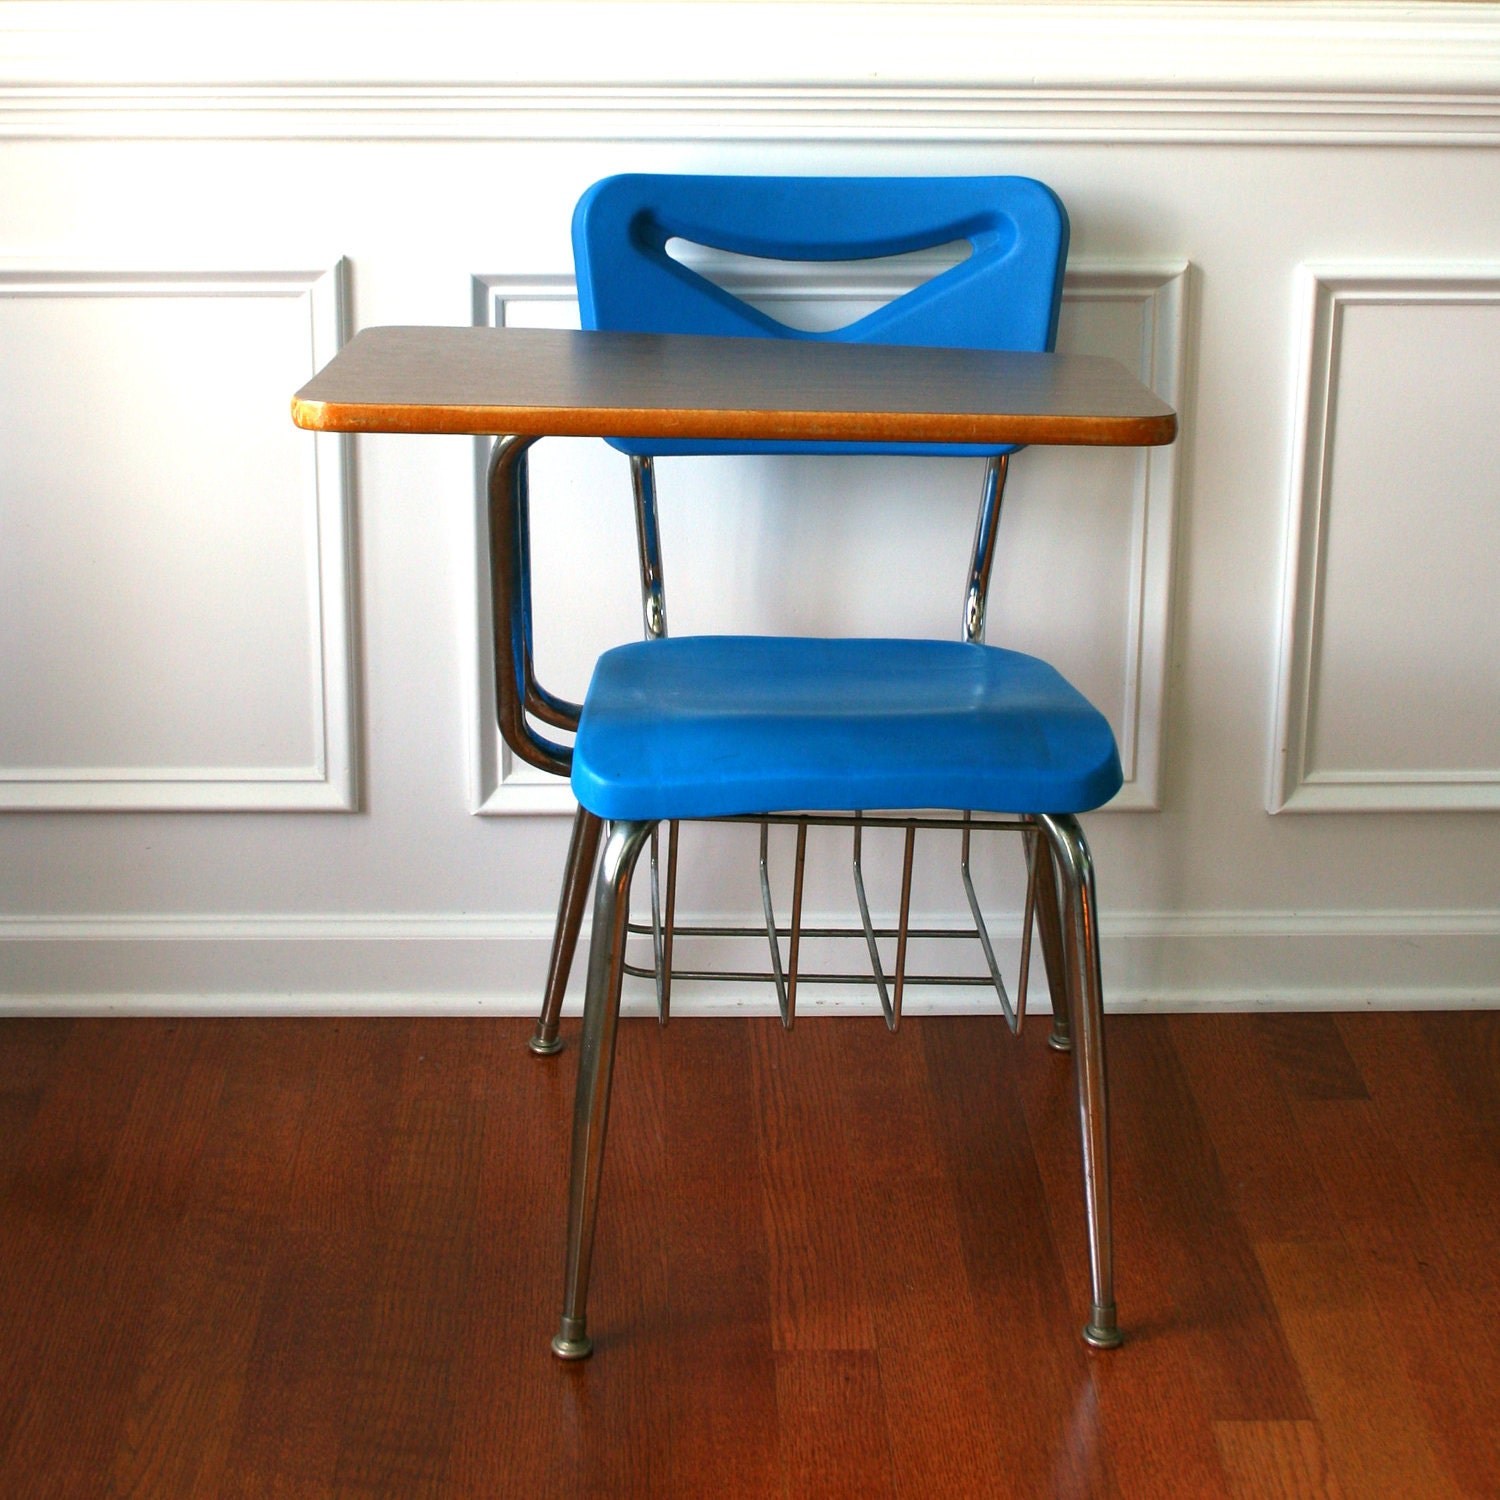 Vintage modern school desk storage chair metal plastic blue for Chair with storage